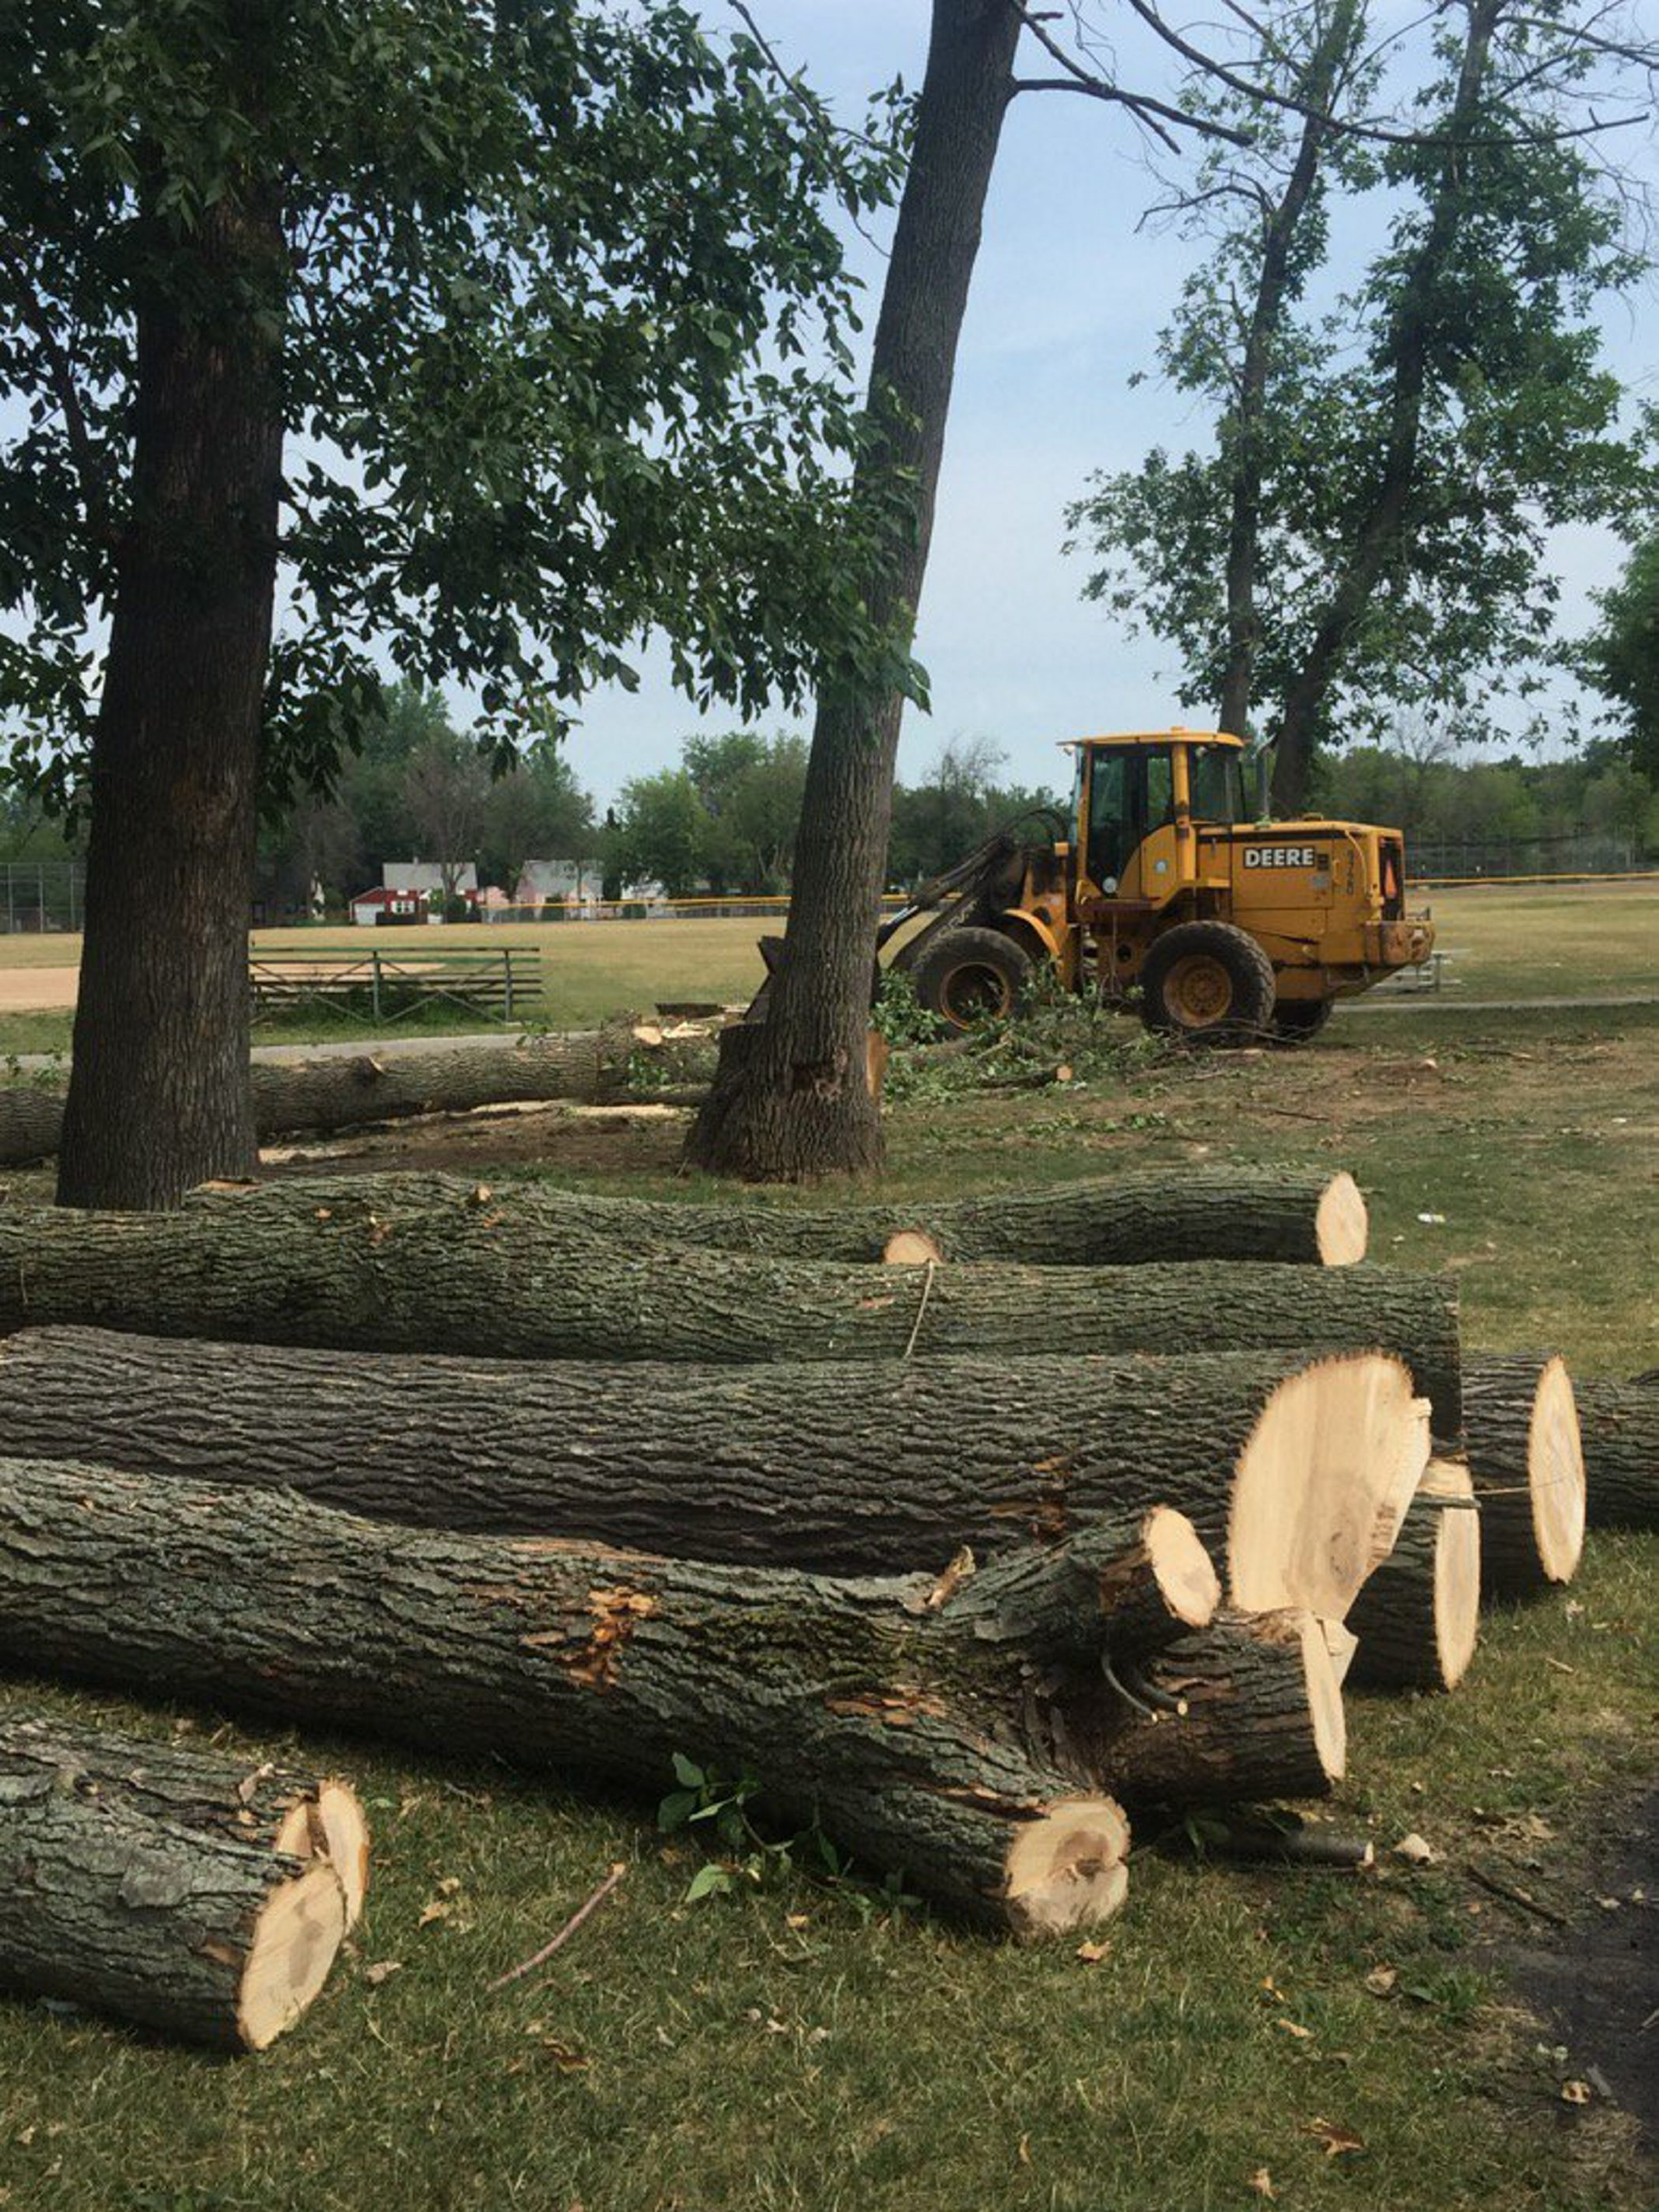 Trees in Shoshone Park infested by the Emerald Ash Borer are being cut down. (Jane Kwiatkowski Radlich/Buffalo News)